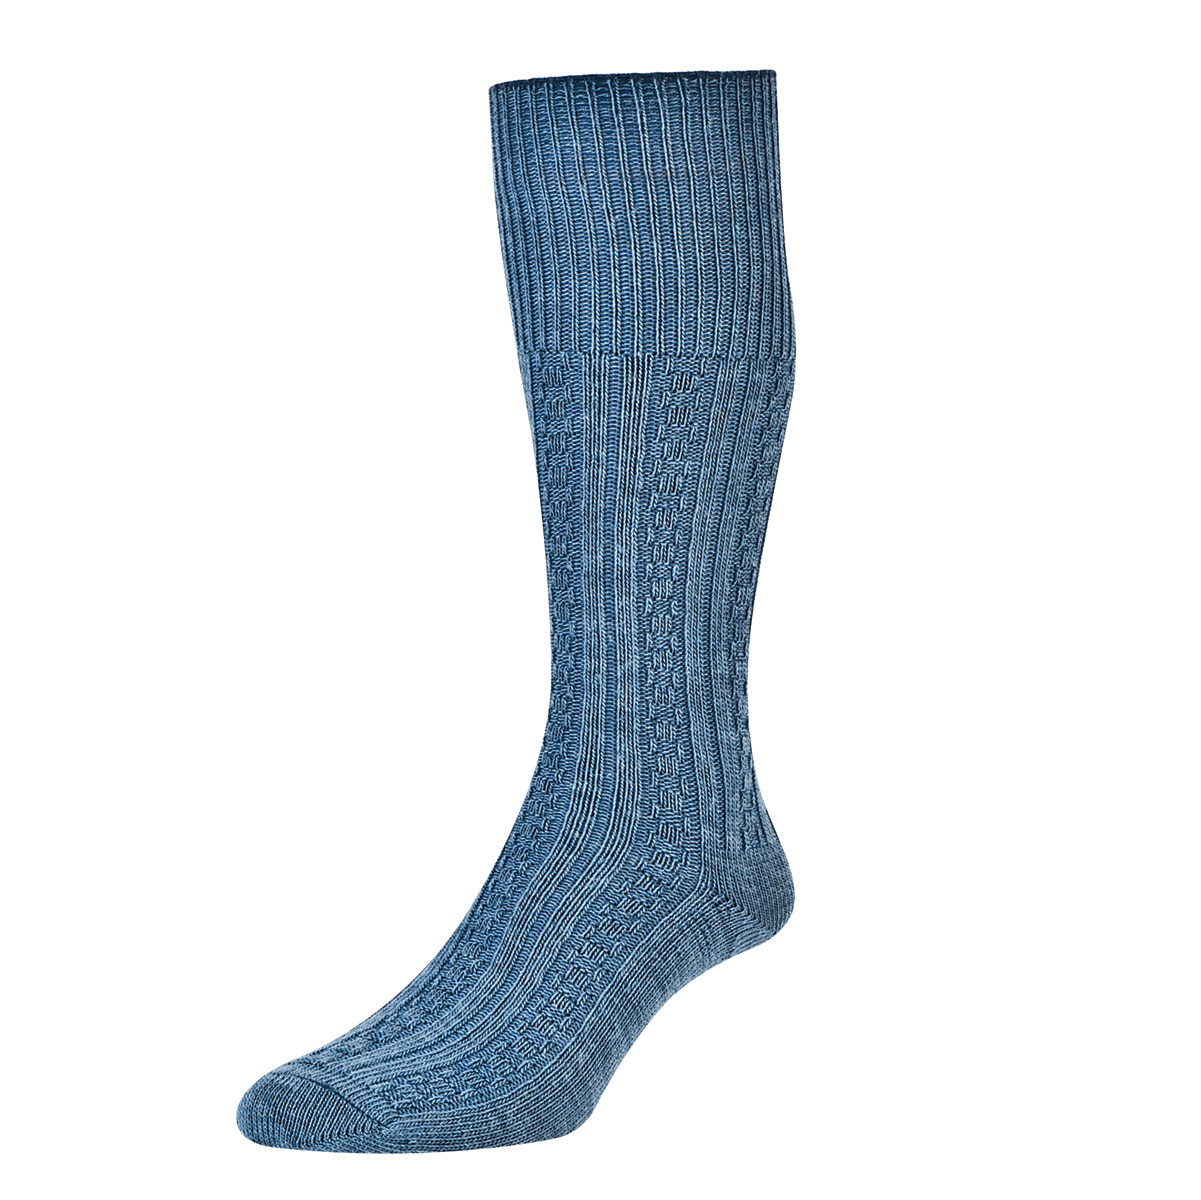 Knitting Pattern For Plain Socks : HJ Hall Cable Knit Long WOOL Plain No Pattern Everyday ...